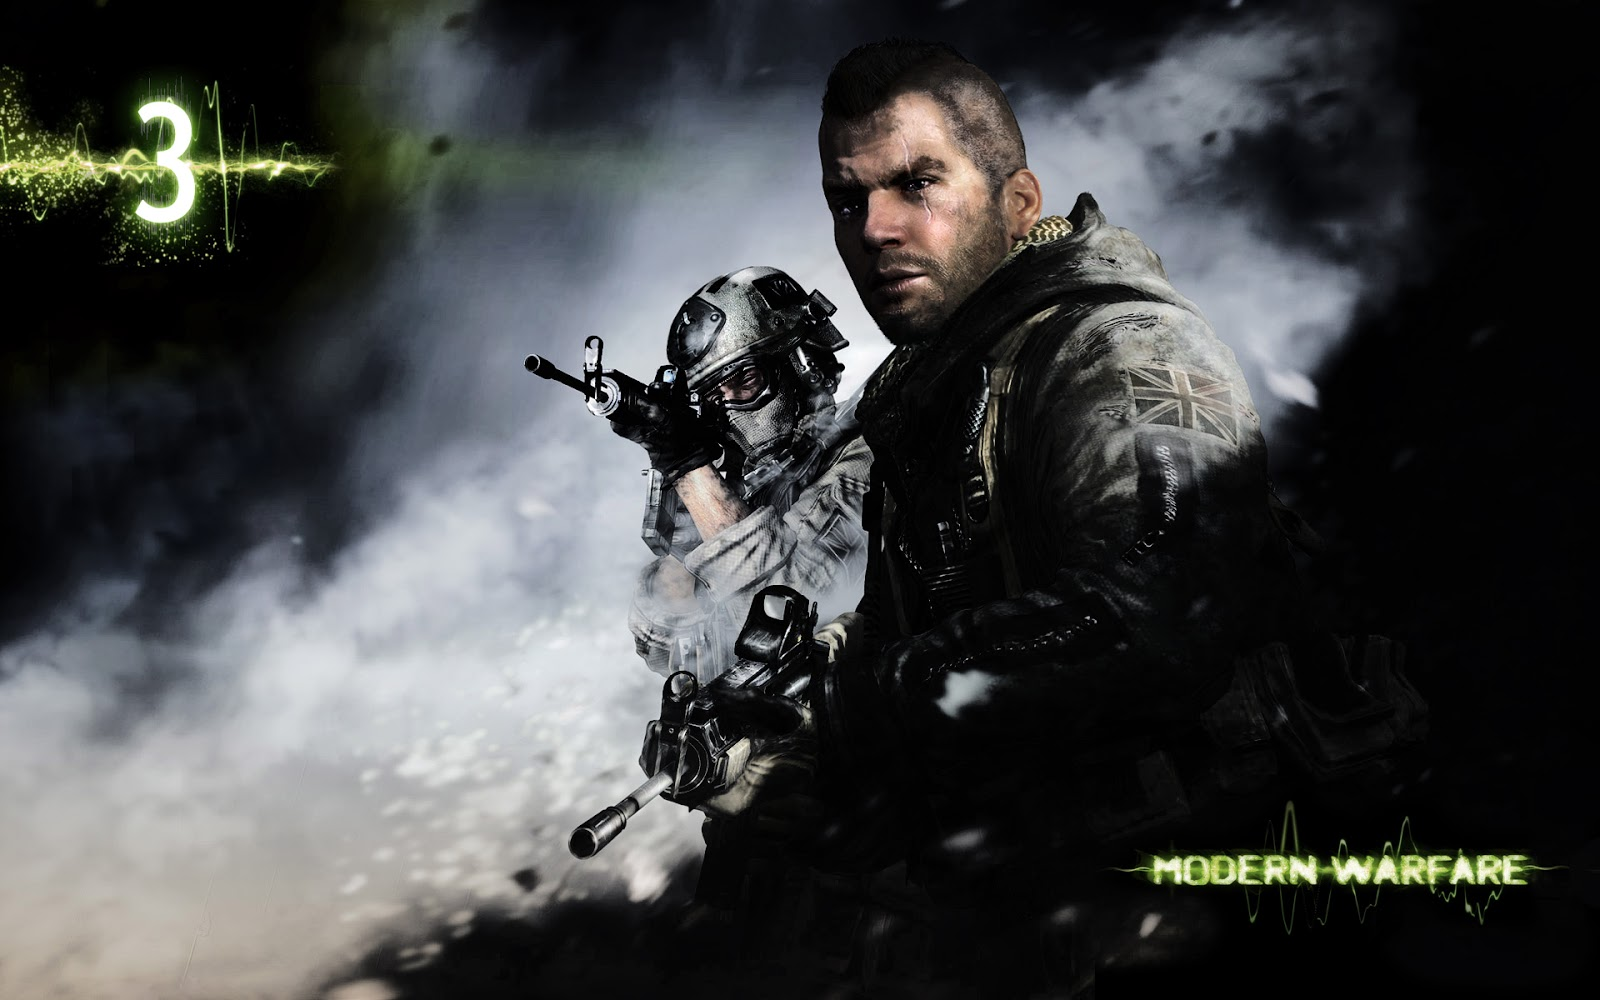 HD WALLPAPERS: Call of Duty Modern Warfare 3 HD Wallpapers